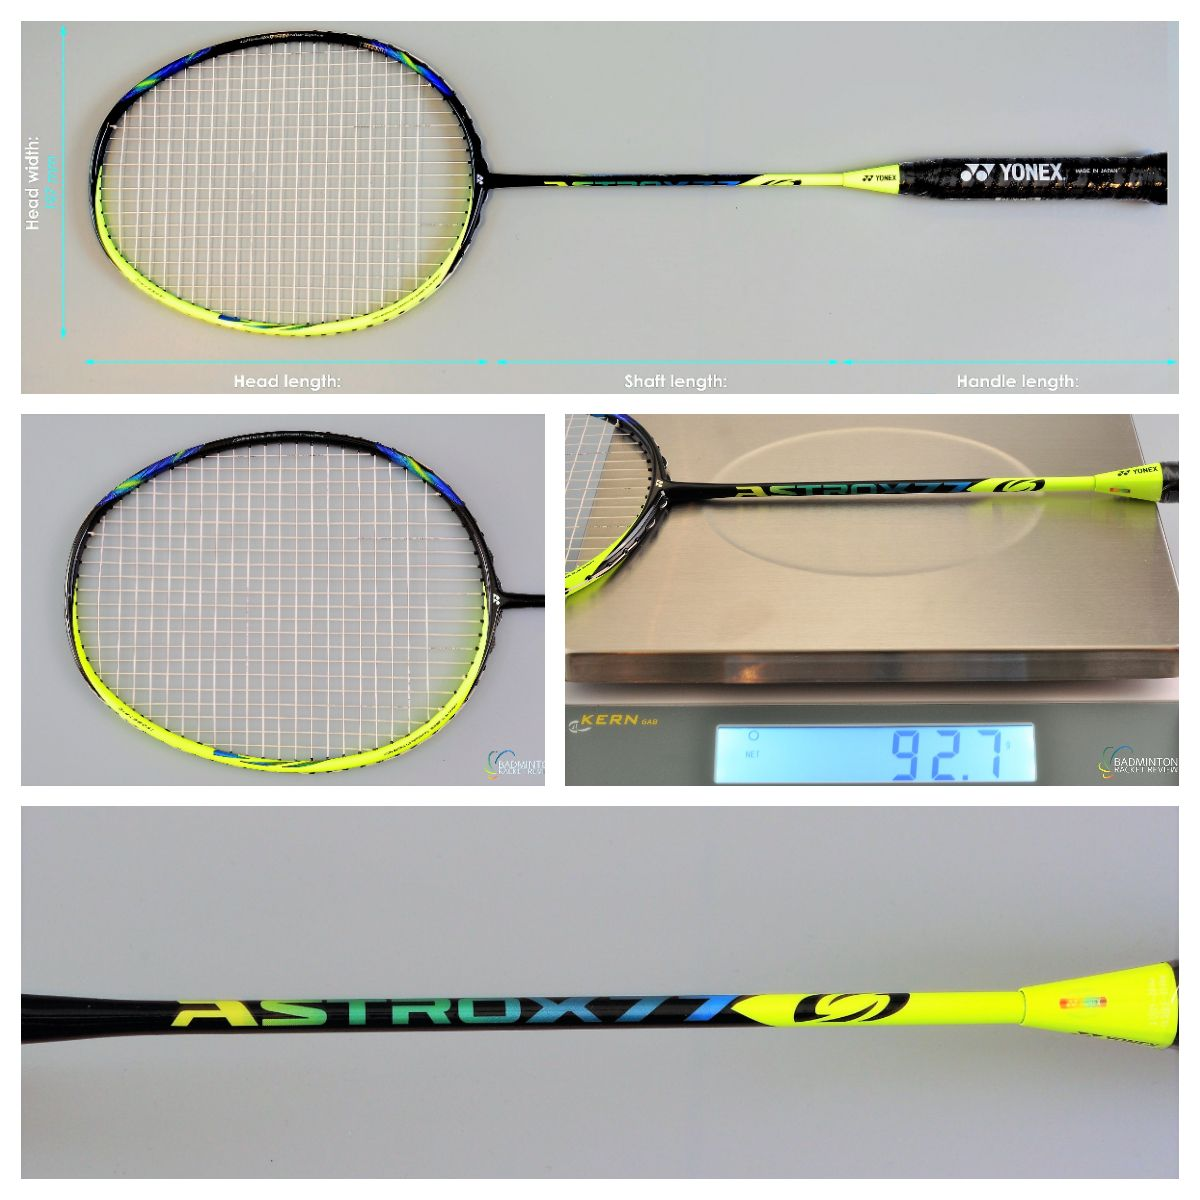 Yonex Astrox 77 3u Badminton Racket Review  To find out